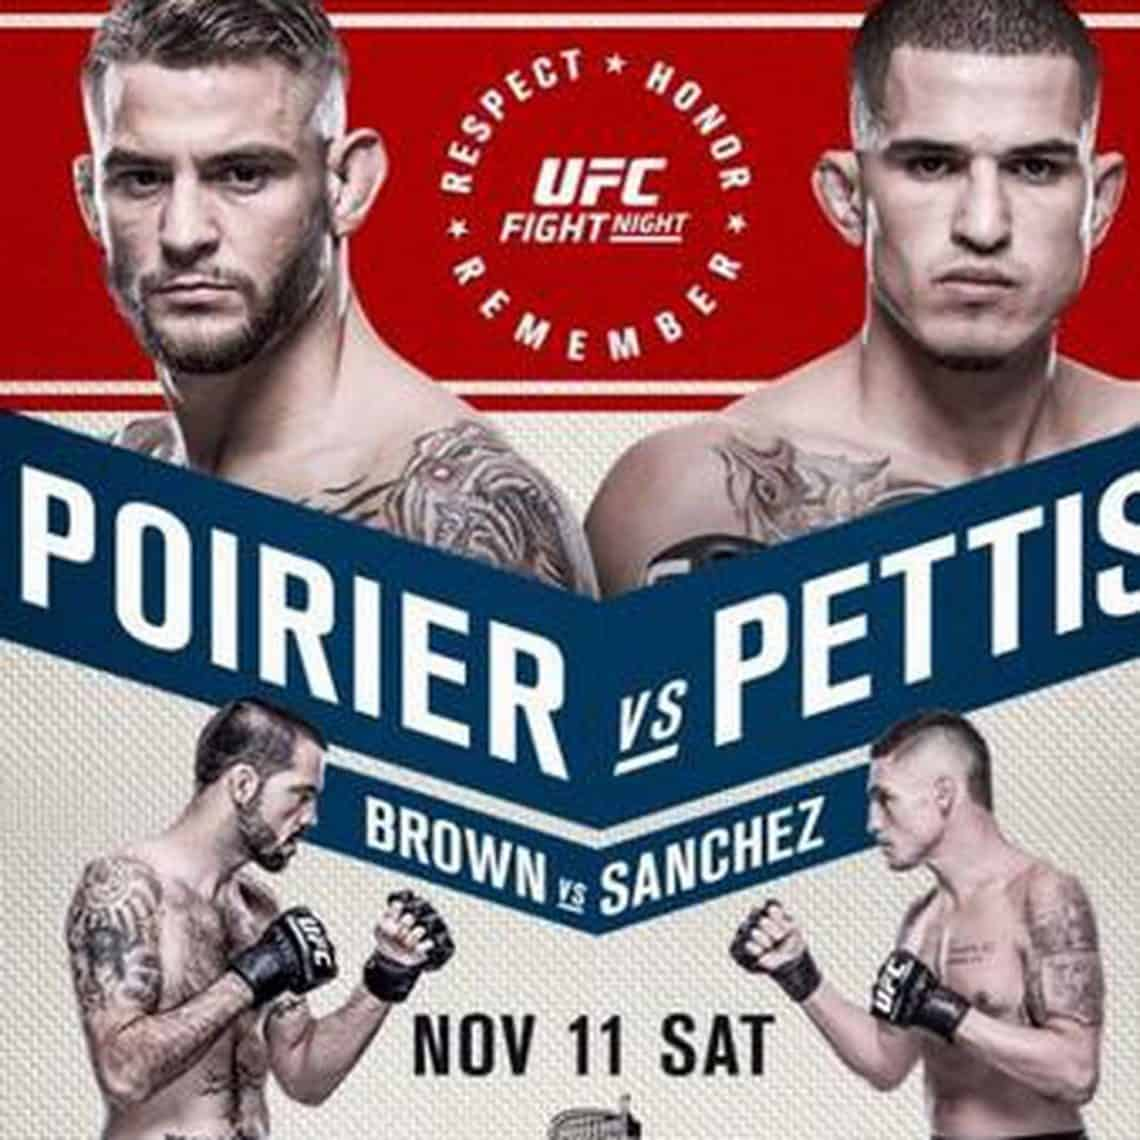 UFC Fight Night: Poirier vs. Pettis 1